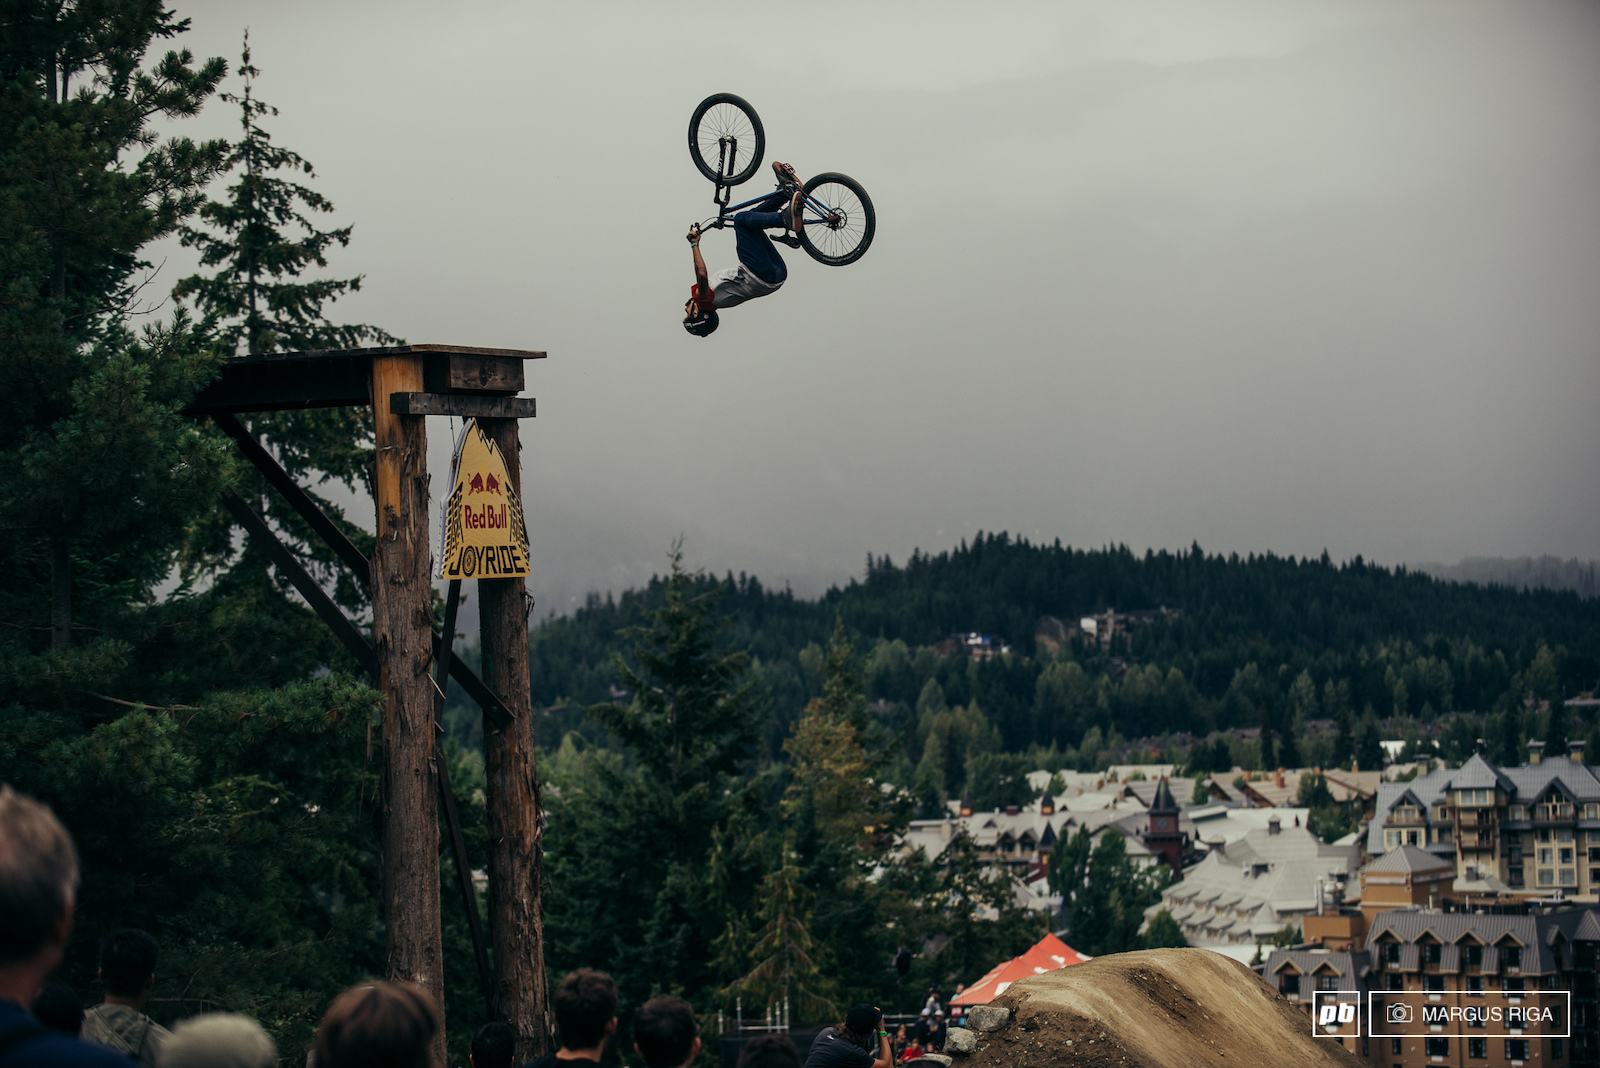 The first air of Crankworx slopestyle.